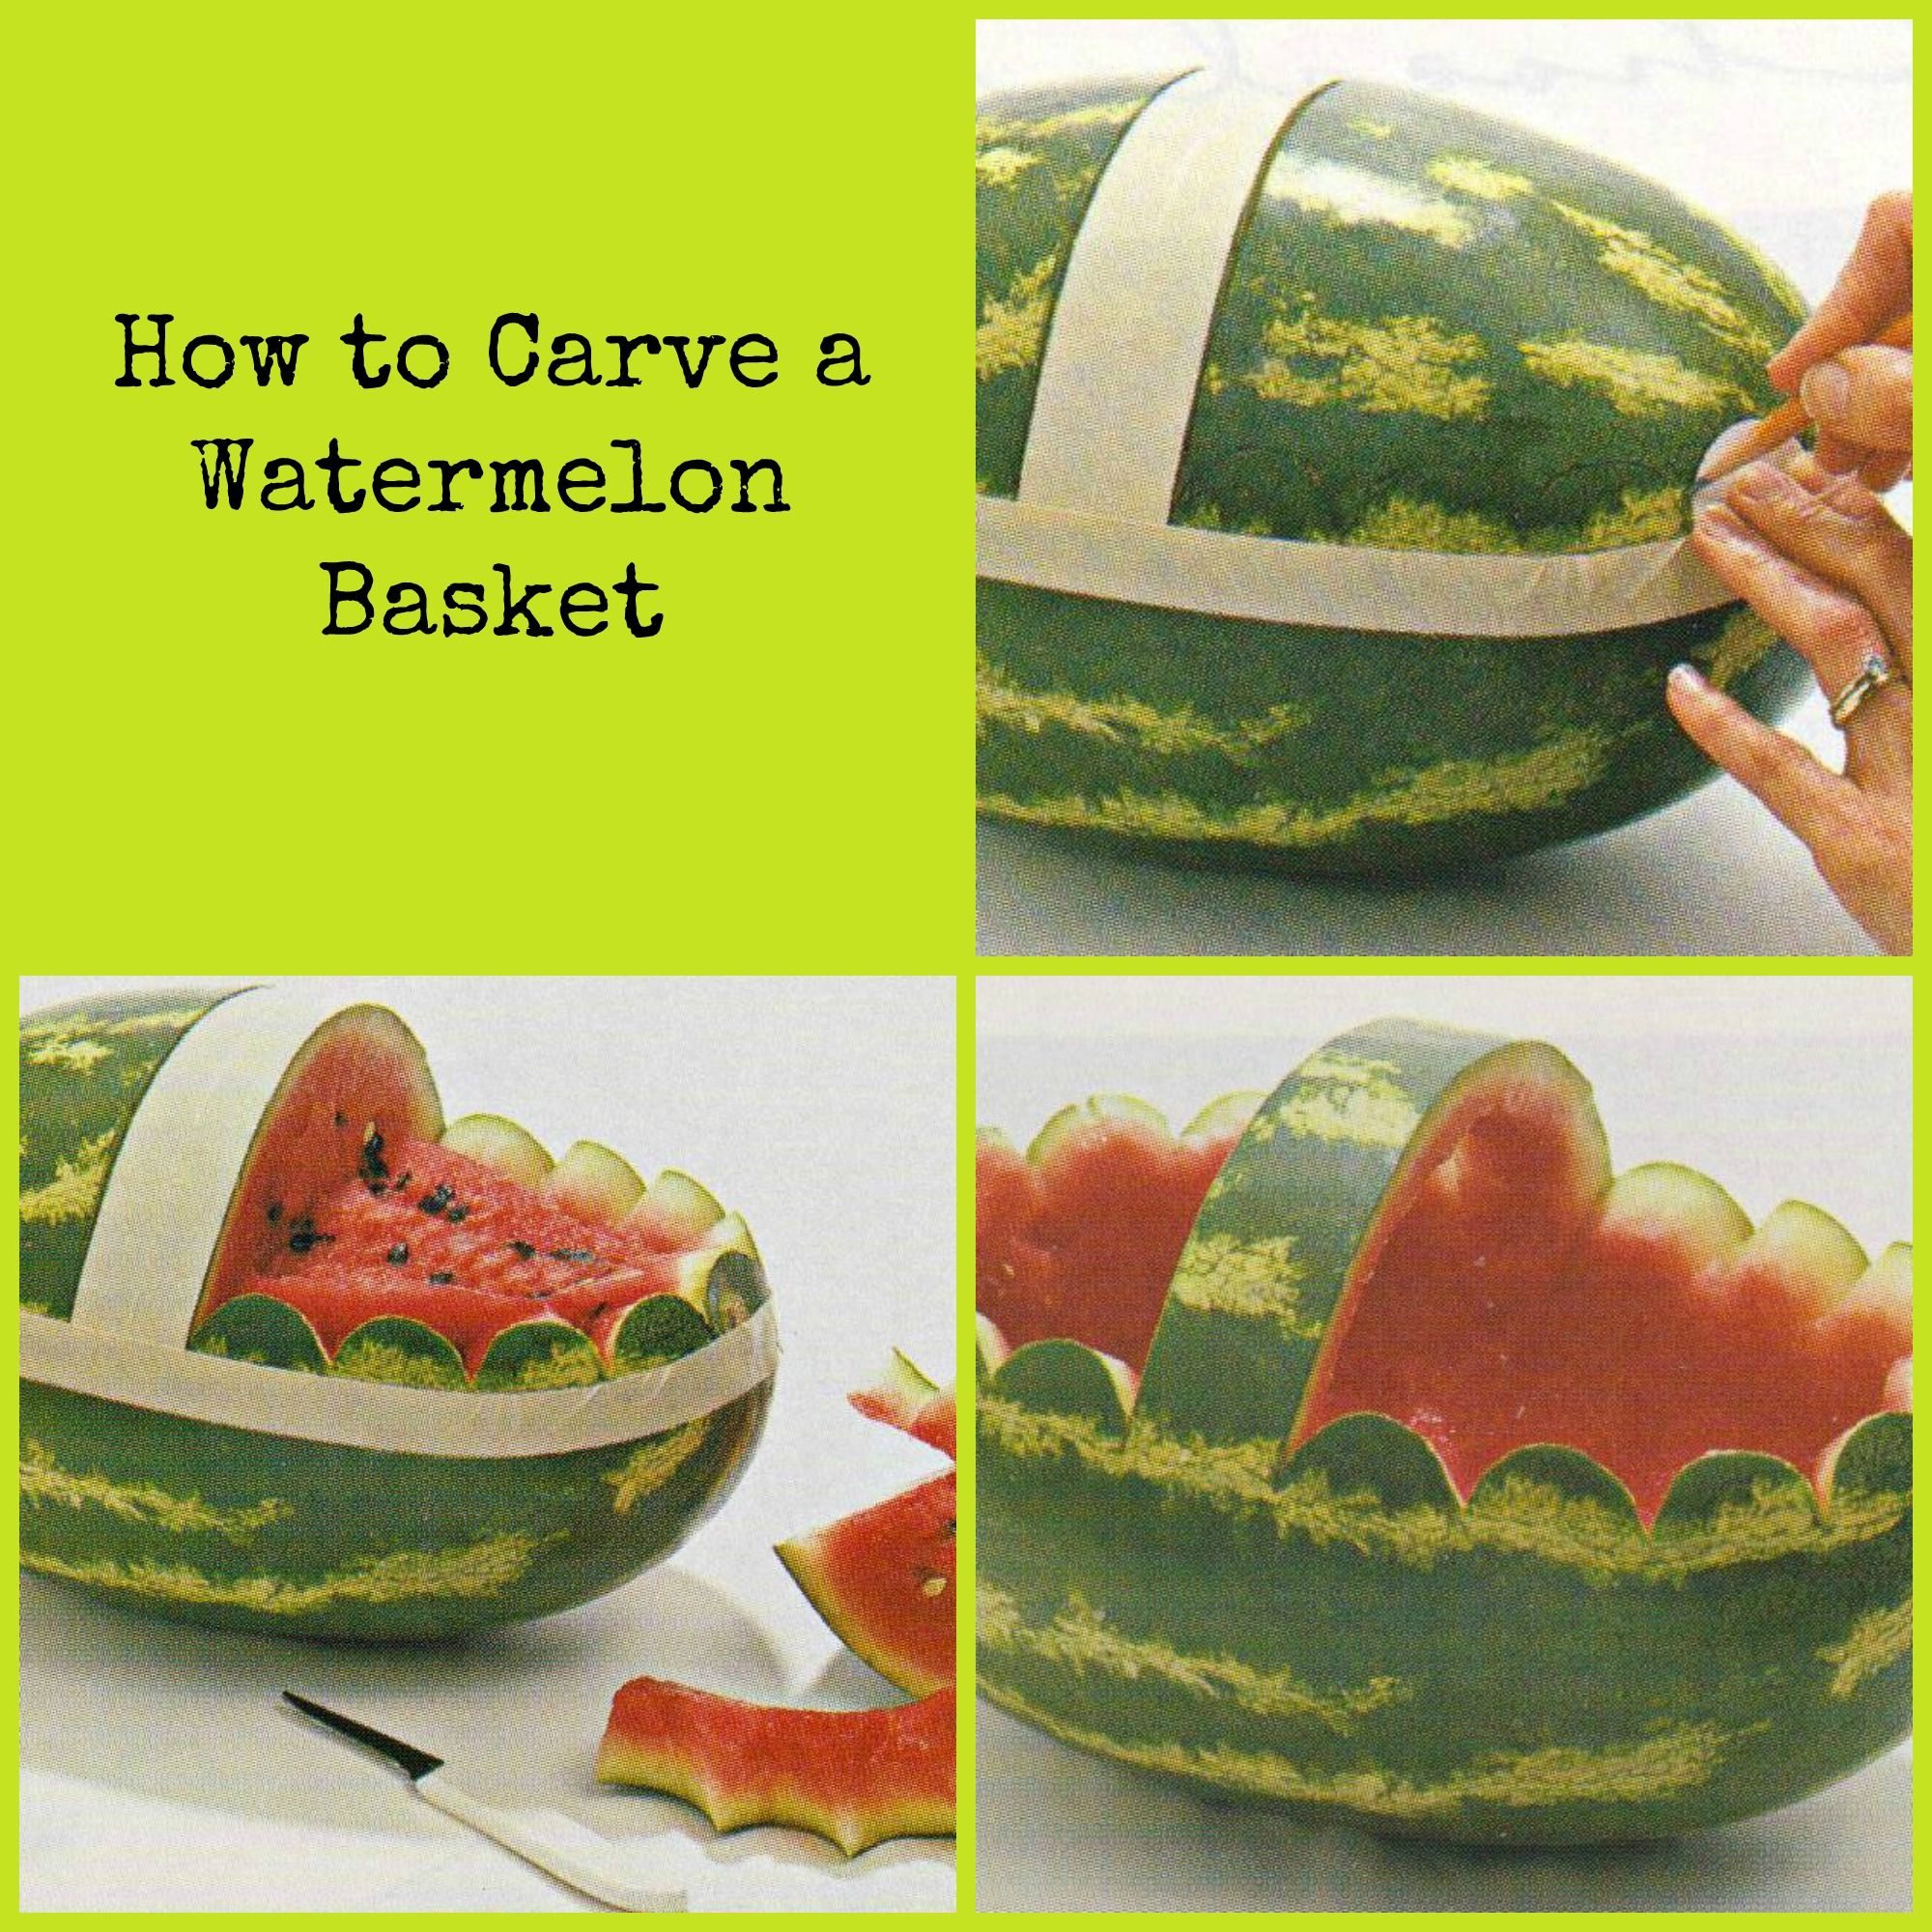 Easy 4 steps to carve a watermelon! | Fruit basket ...